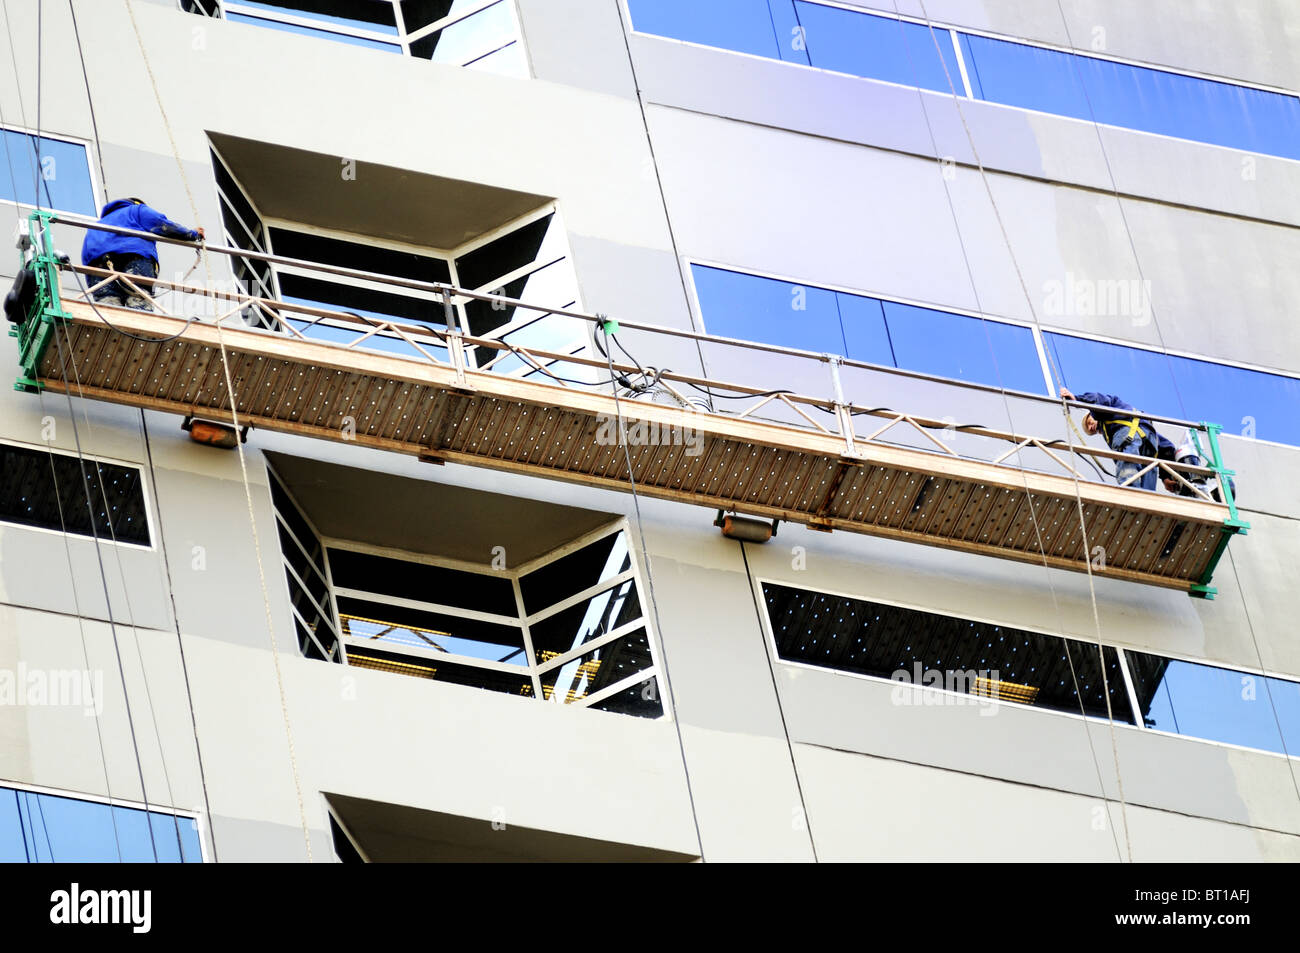 Window washers working in Fort Wayne Indiana - Stock Image